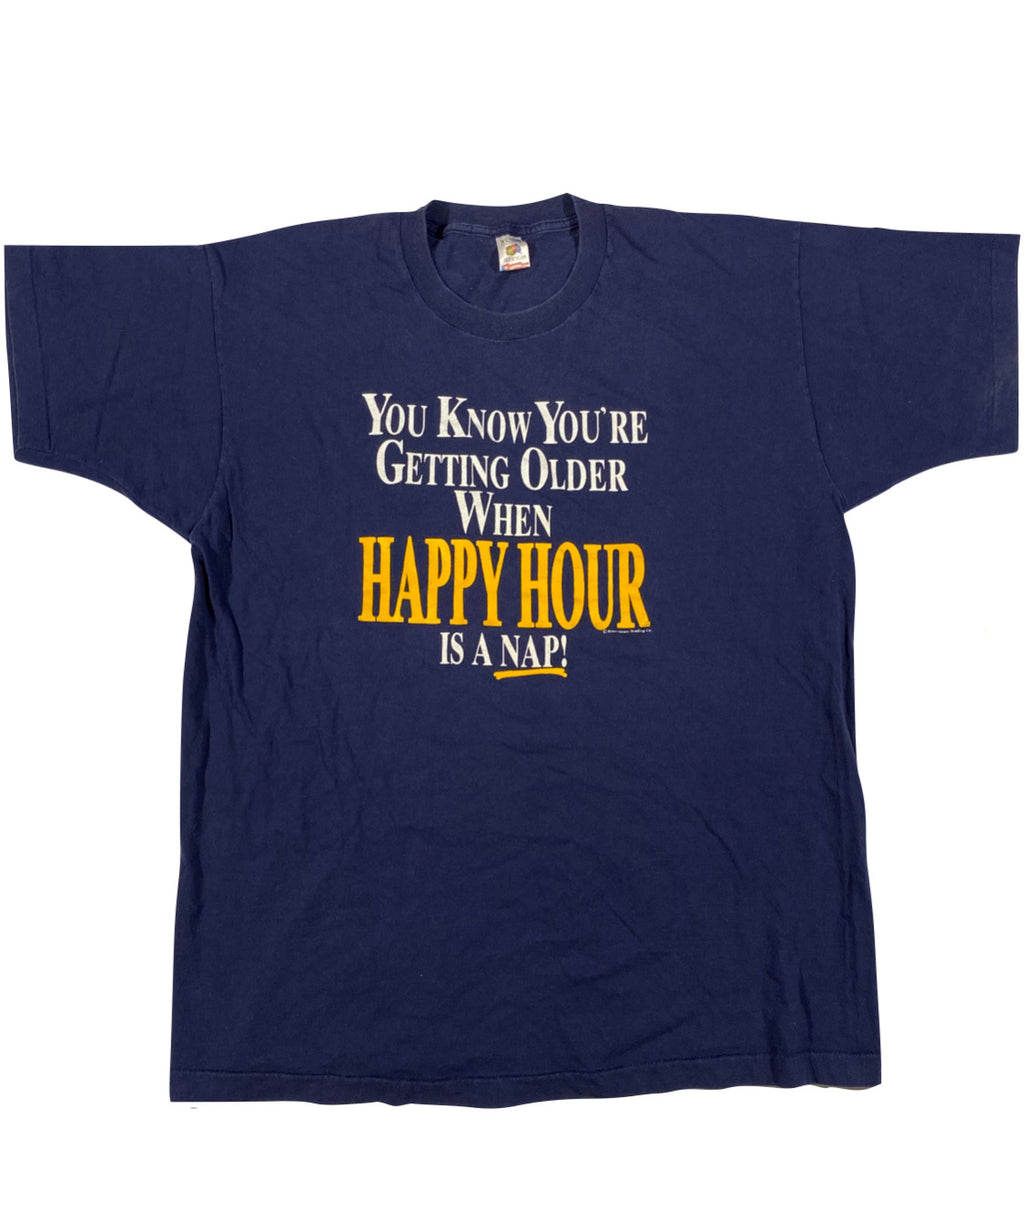 90s Happy hour is a nap tee. XL